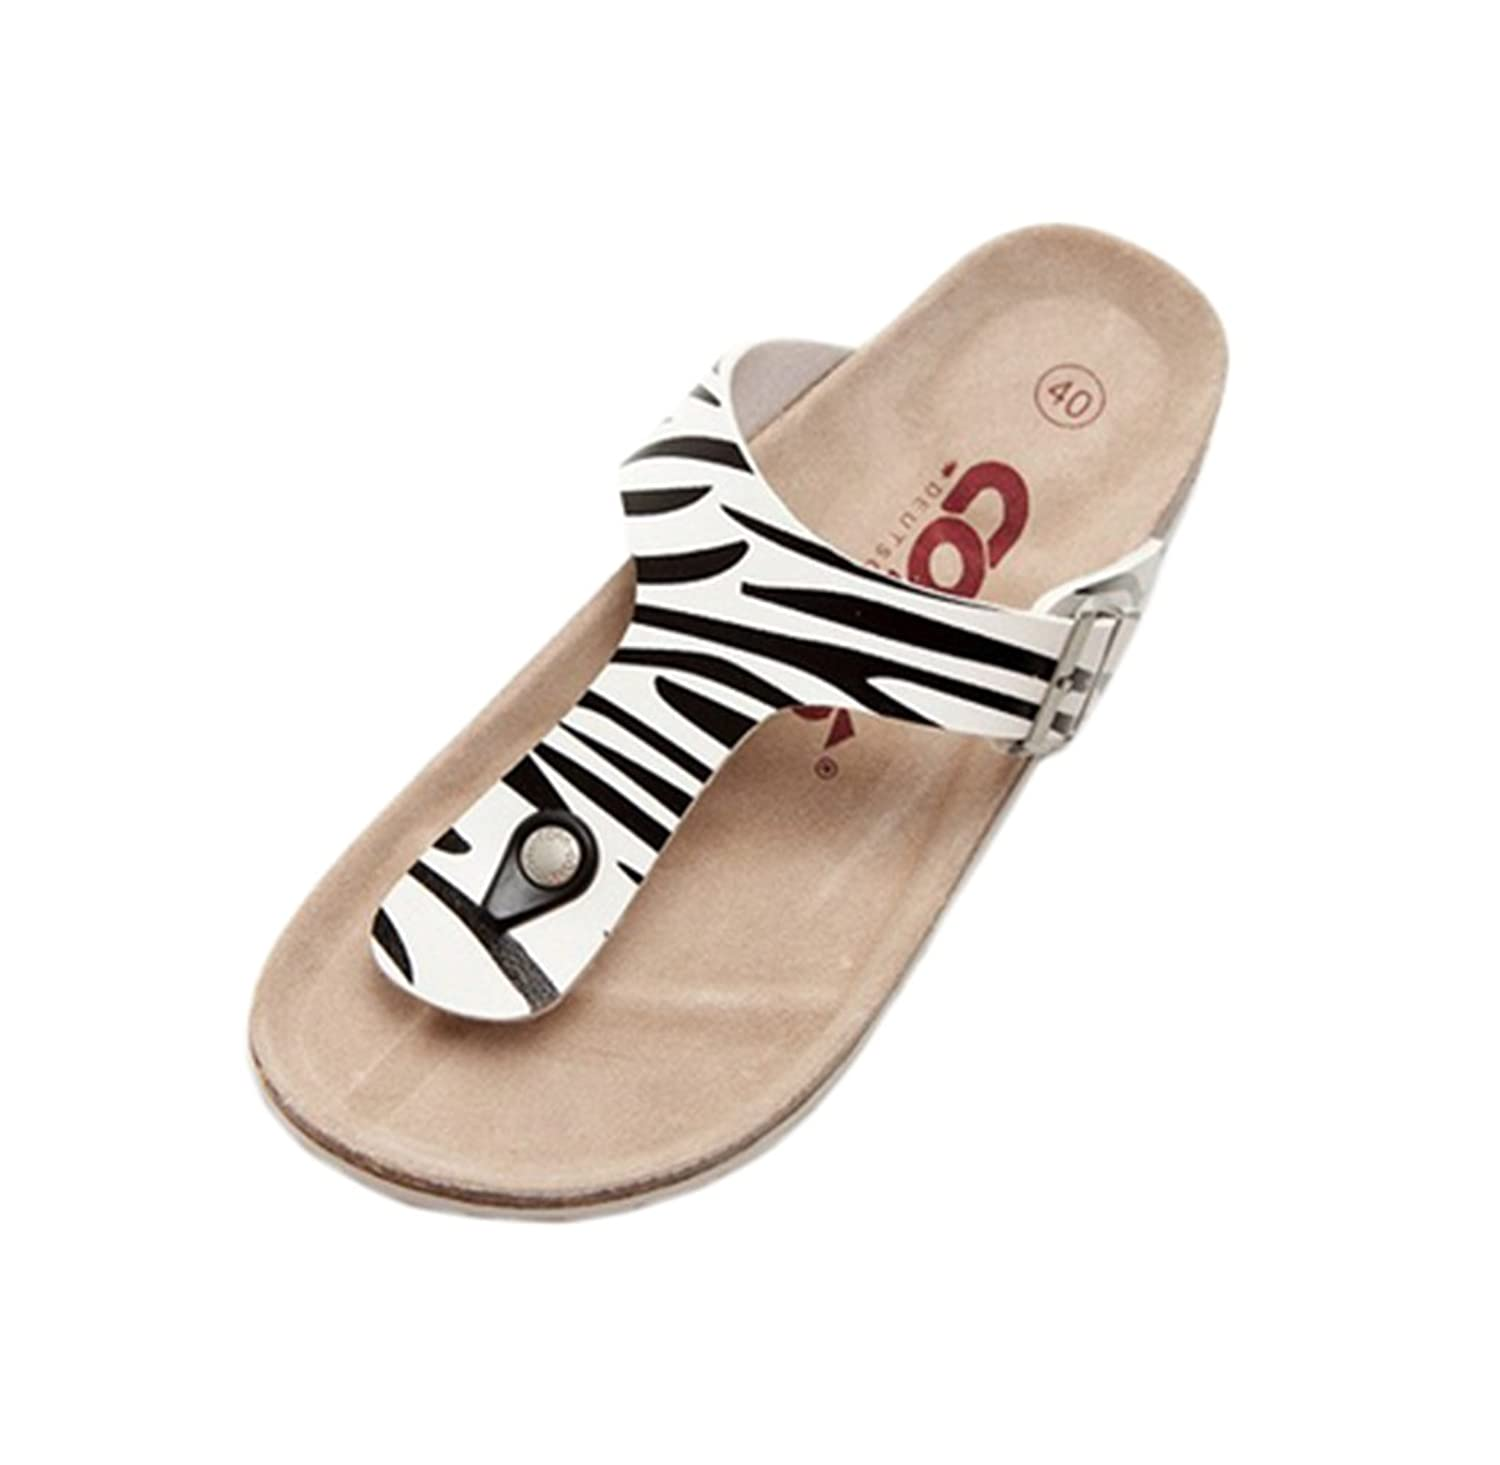 Wantmore Men's Round Toe Simple Beach Sandals